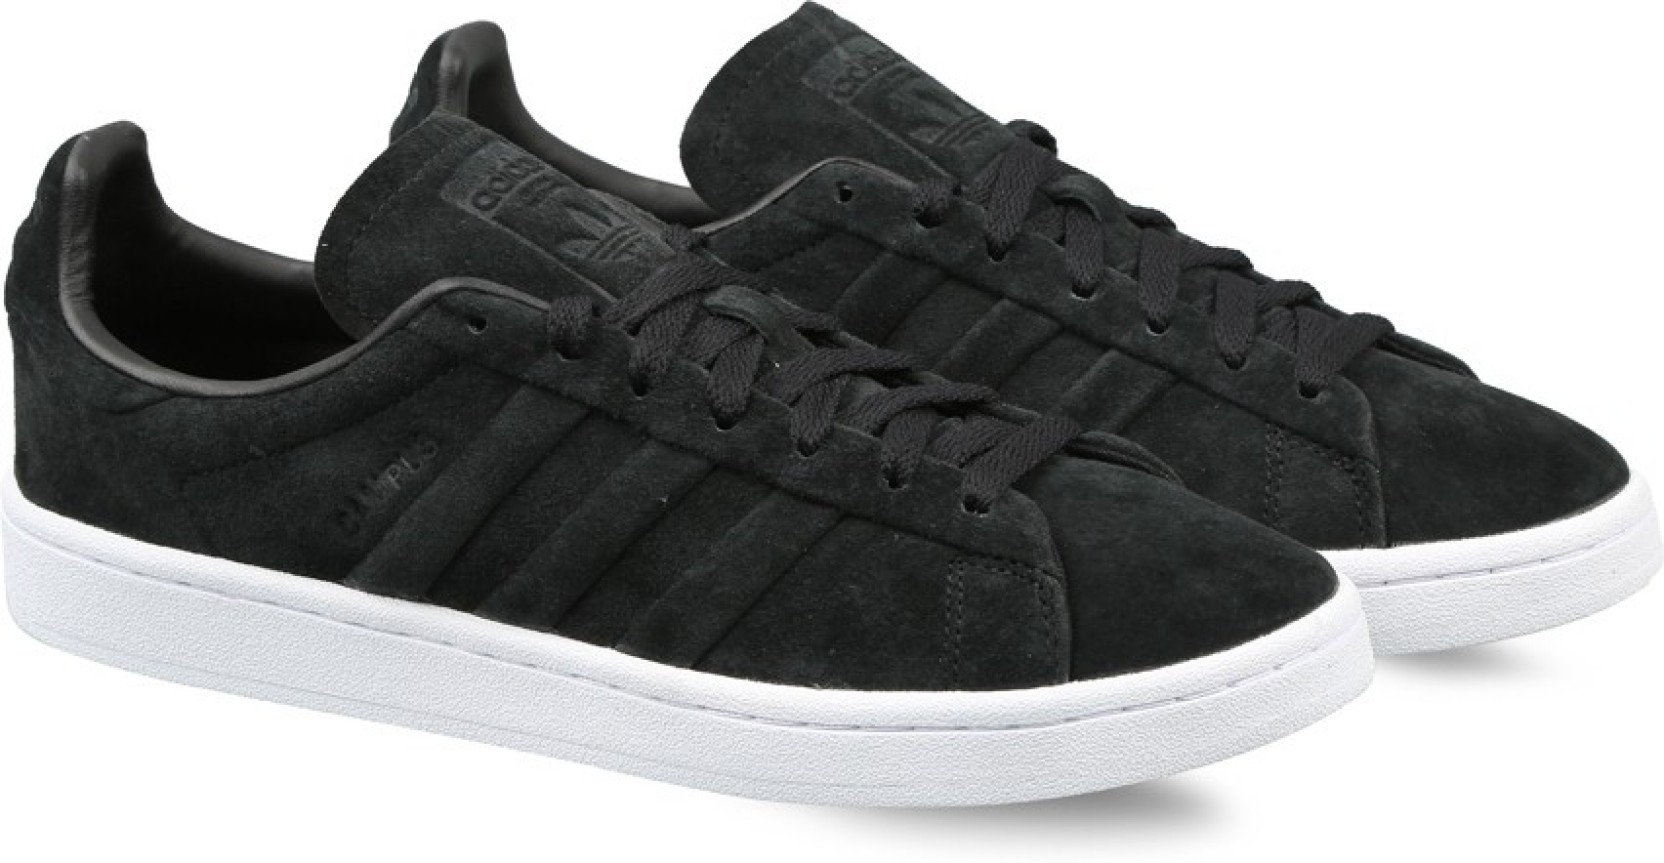 the latest 43171 02cd1 ADIDAS ORIGINALS CAMPUS STITCH AND TURN Sneakers For Men (Black)